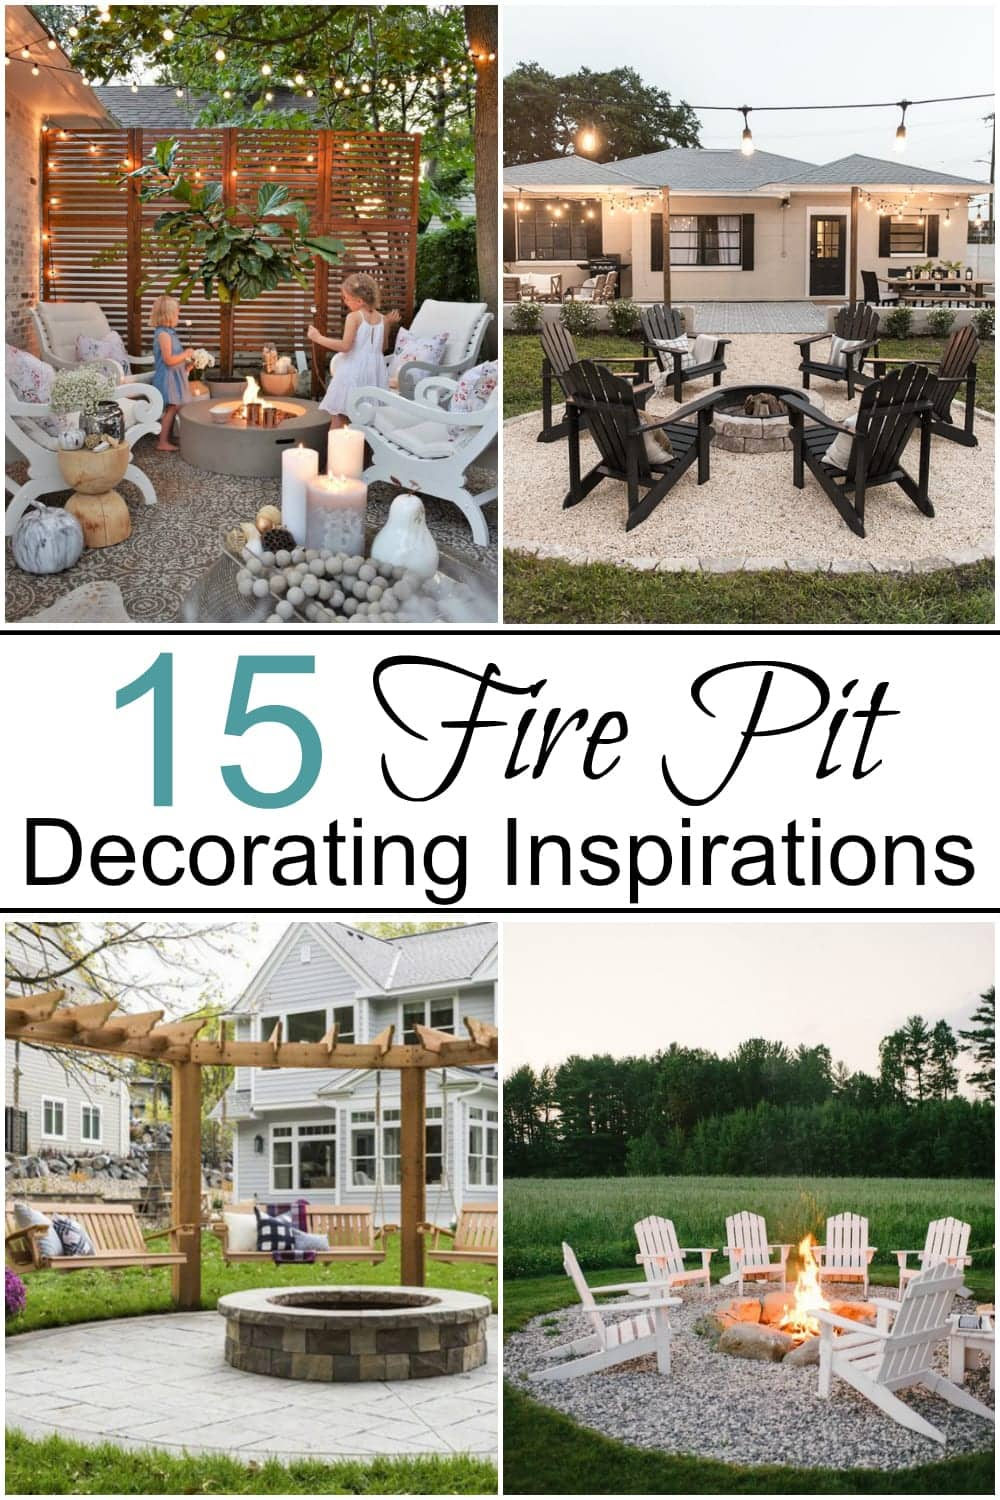 15 Fire Pit Ideas | A round-up of 15 fire pit ideas and outdoor decorating inspirations for a cozy, welcoming backyard year-round.